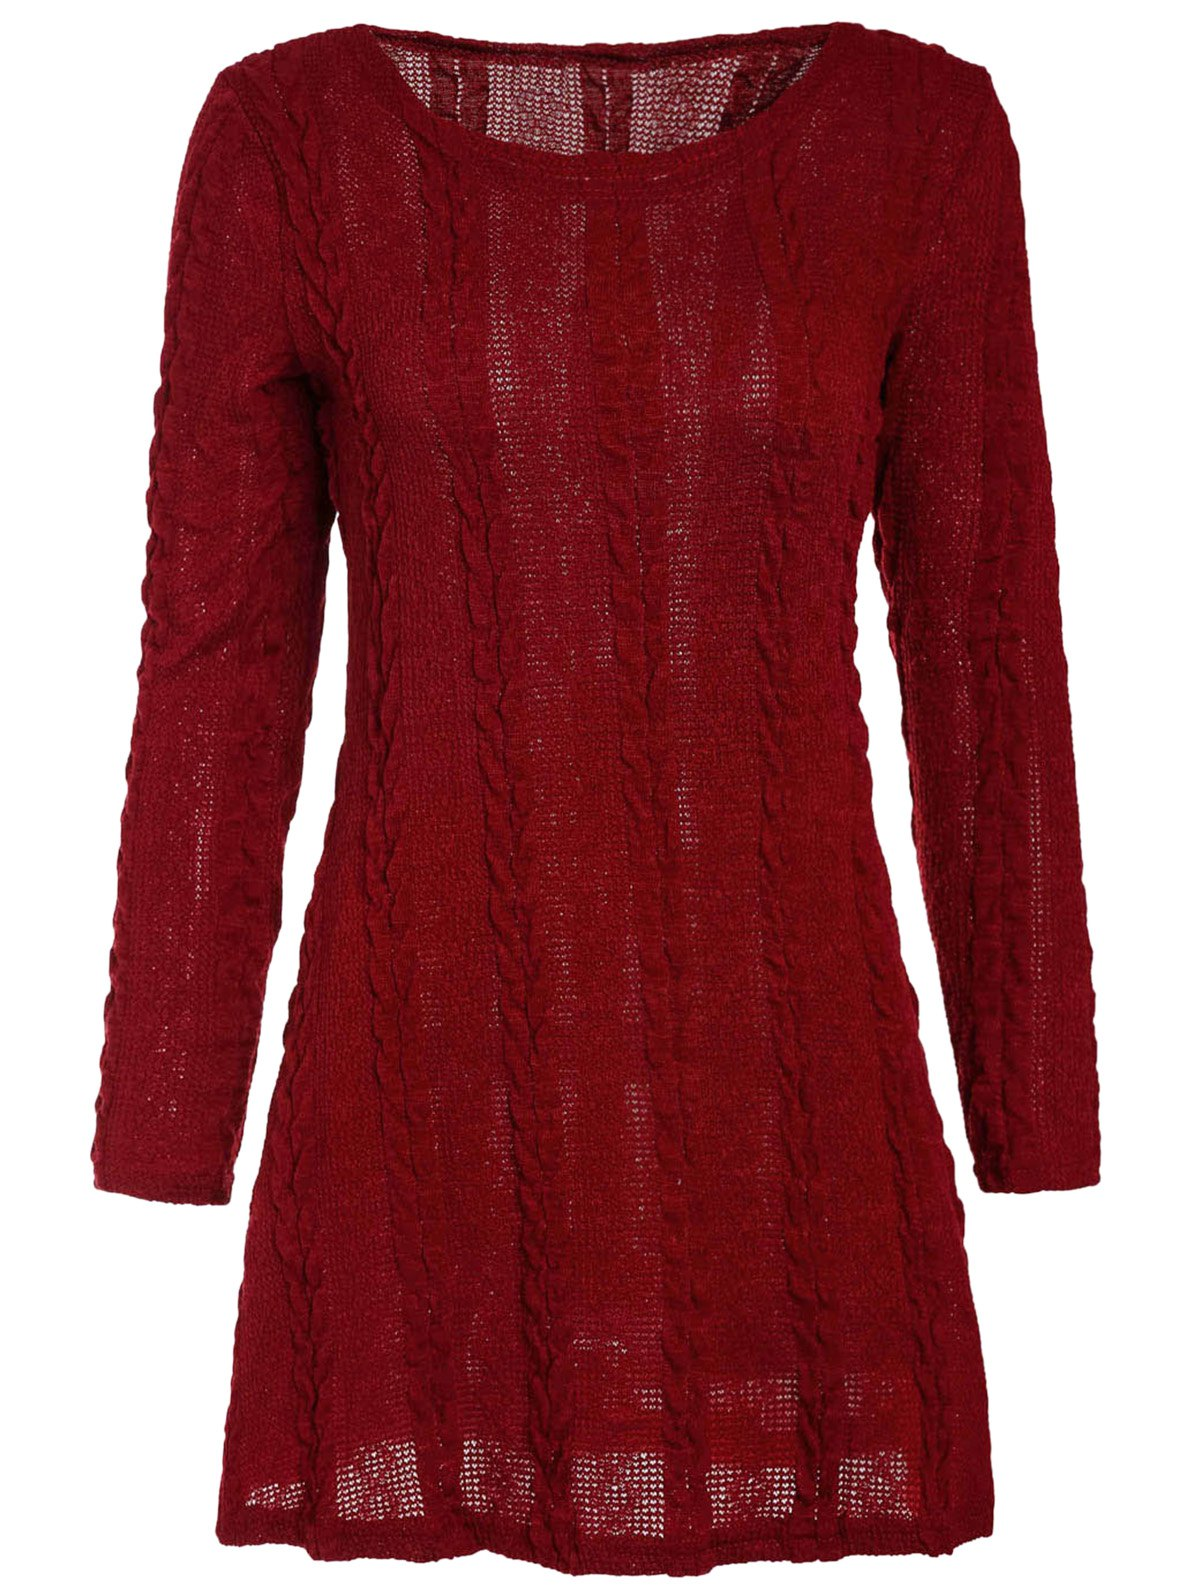 Brief A-Line Scoop Neck Long Sleeve Dress For Women - S WINE RED